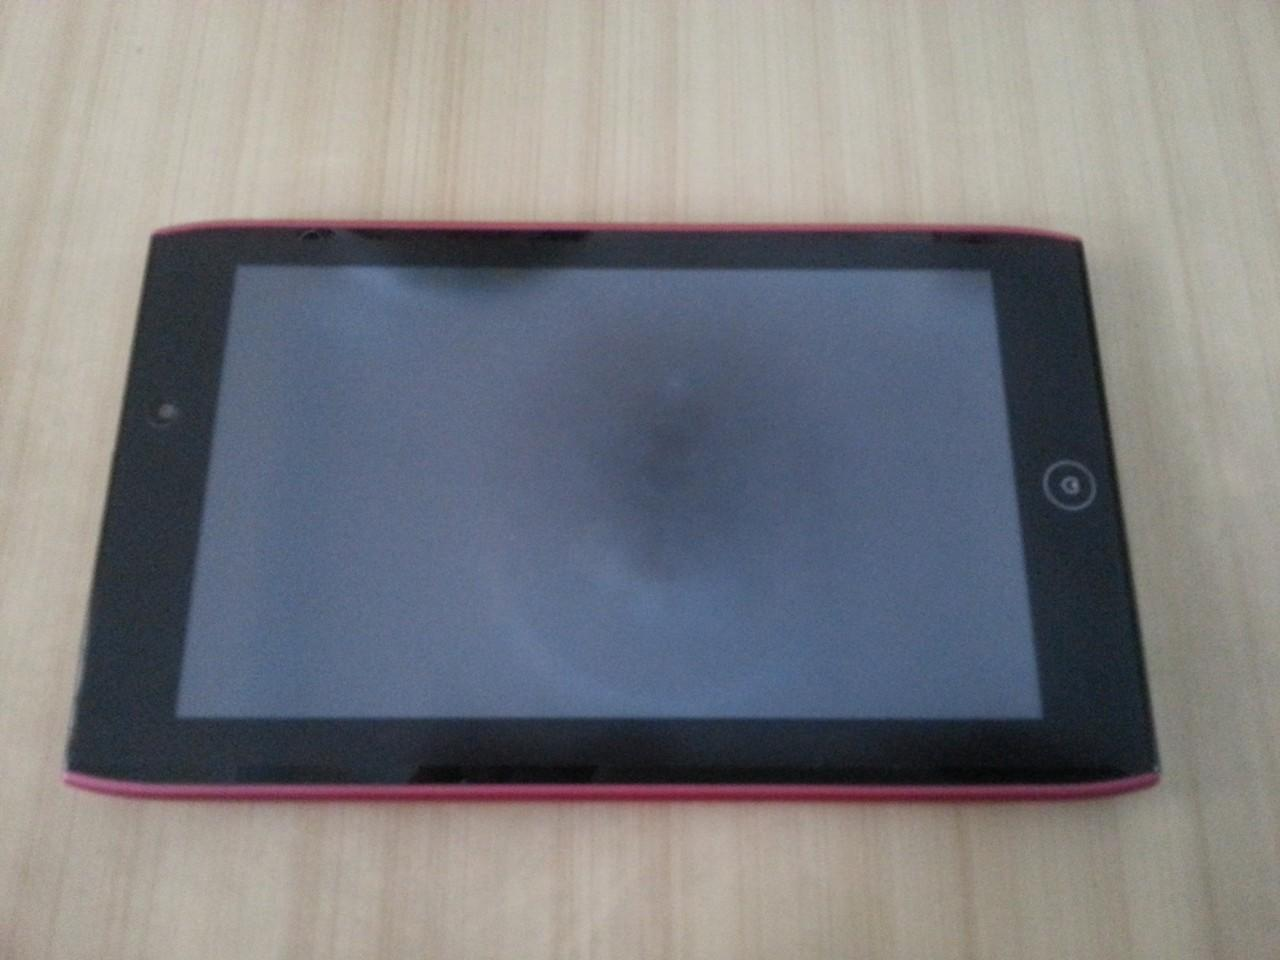 WTS Acer Iconia Tab A101 8GB HSPA+ ( Pink )